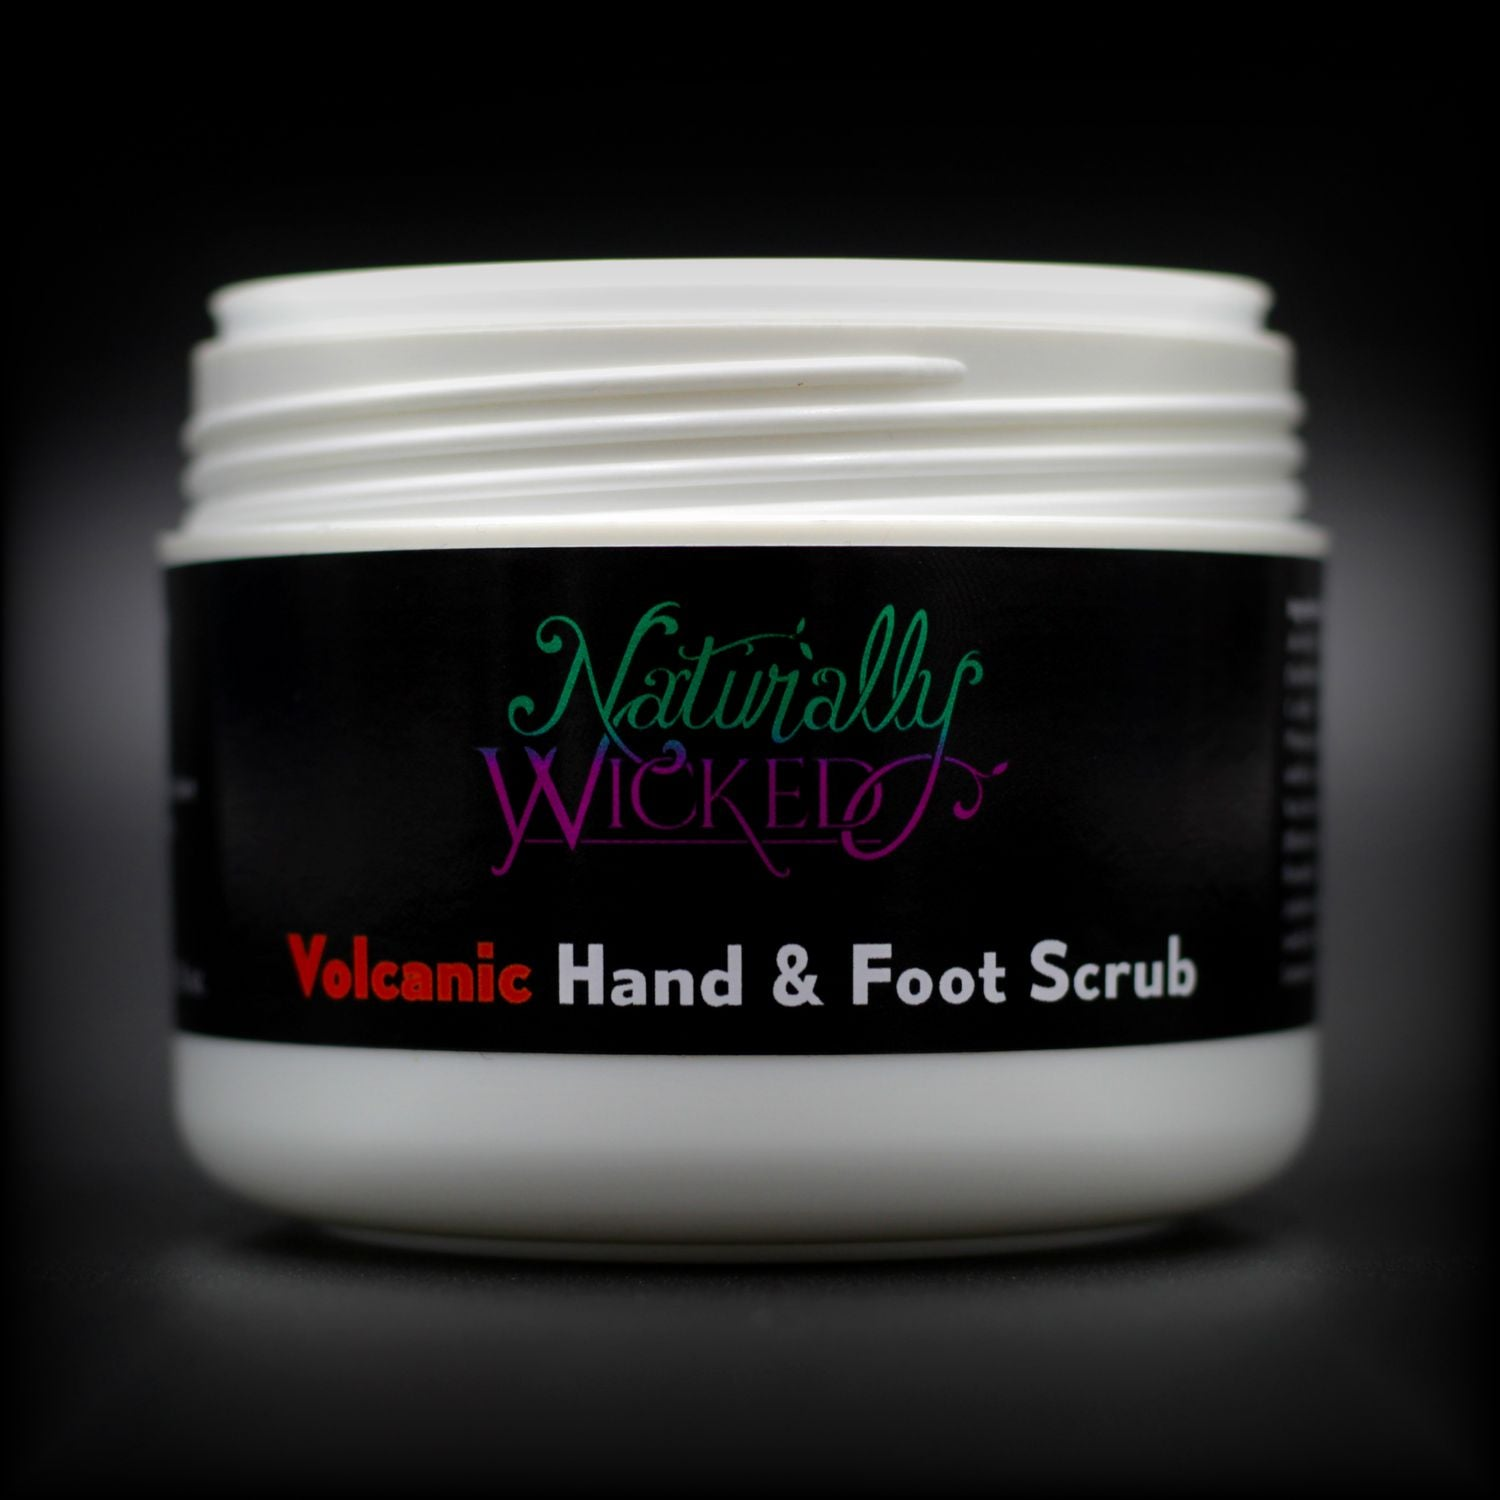 Naturally Wicked Volcanic Hand & Foot Scrub Container, Seal & Screw Connection Without Lid